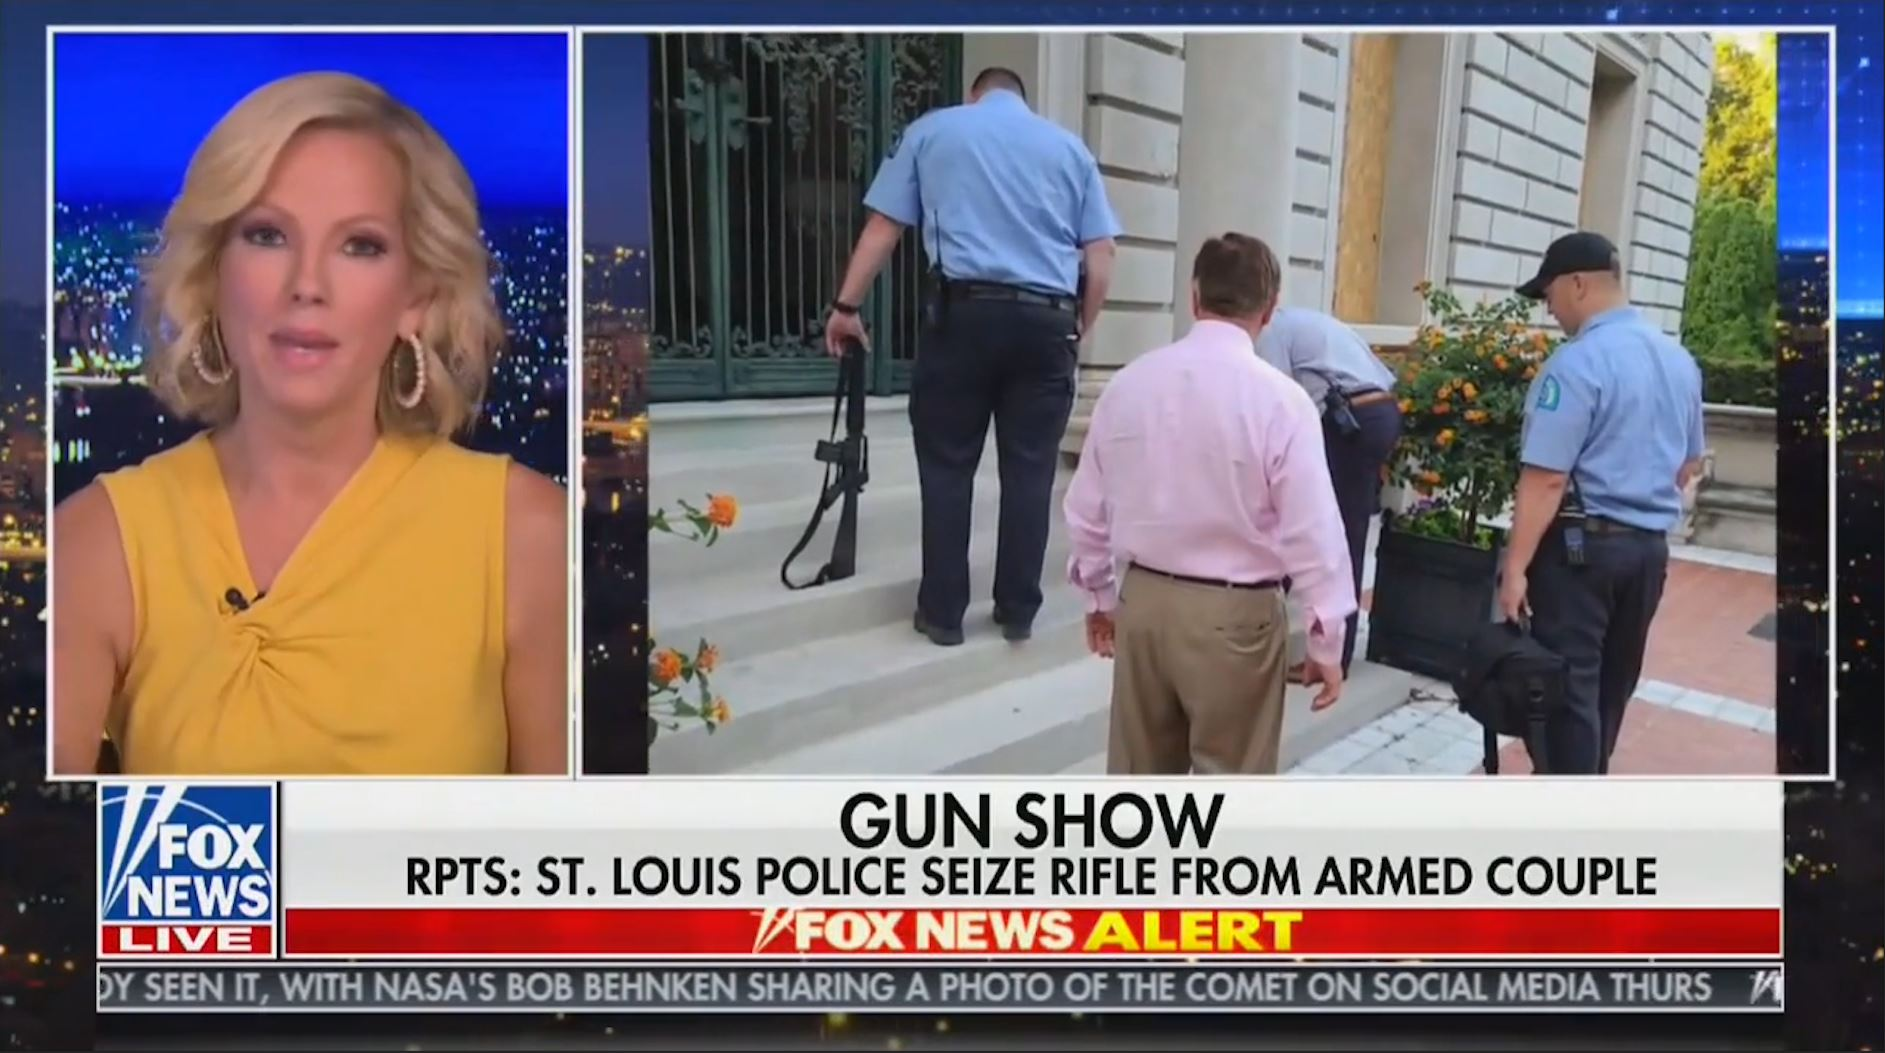 Missouri AG On Warrant Served On St. Louis Couple: Democrat Prosecutor Has History Of 'Politically Motivated Decisions,' Has Not Charged Those Who Attacked Prayerful Protesters